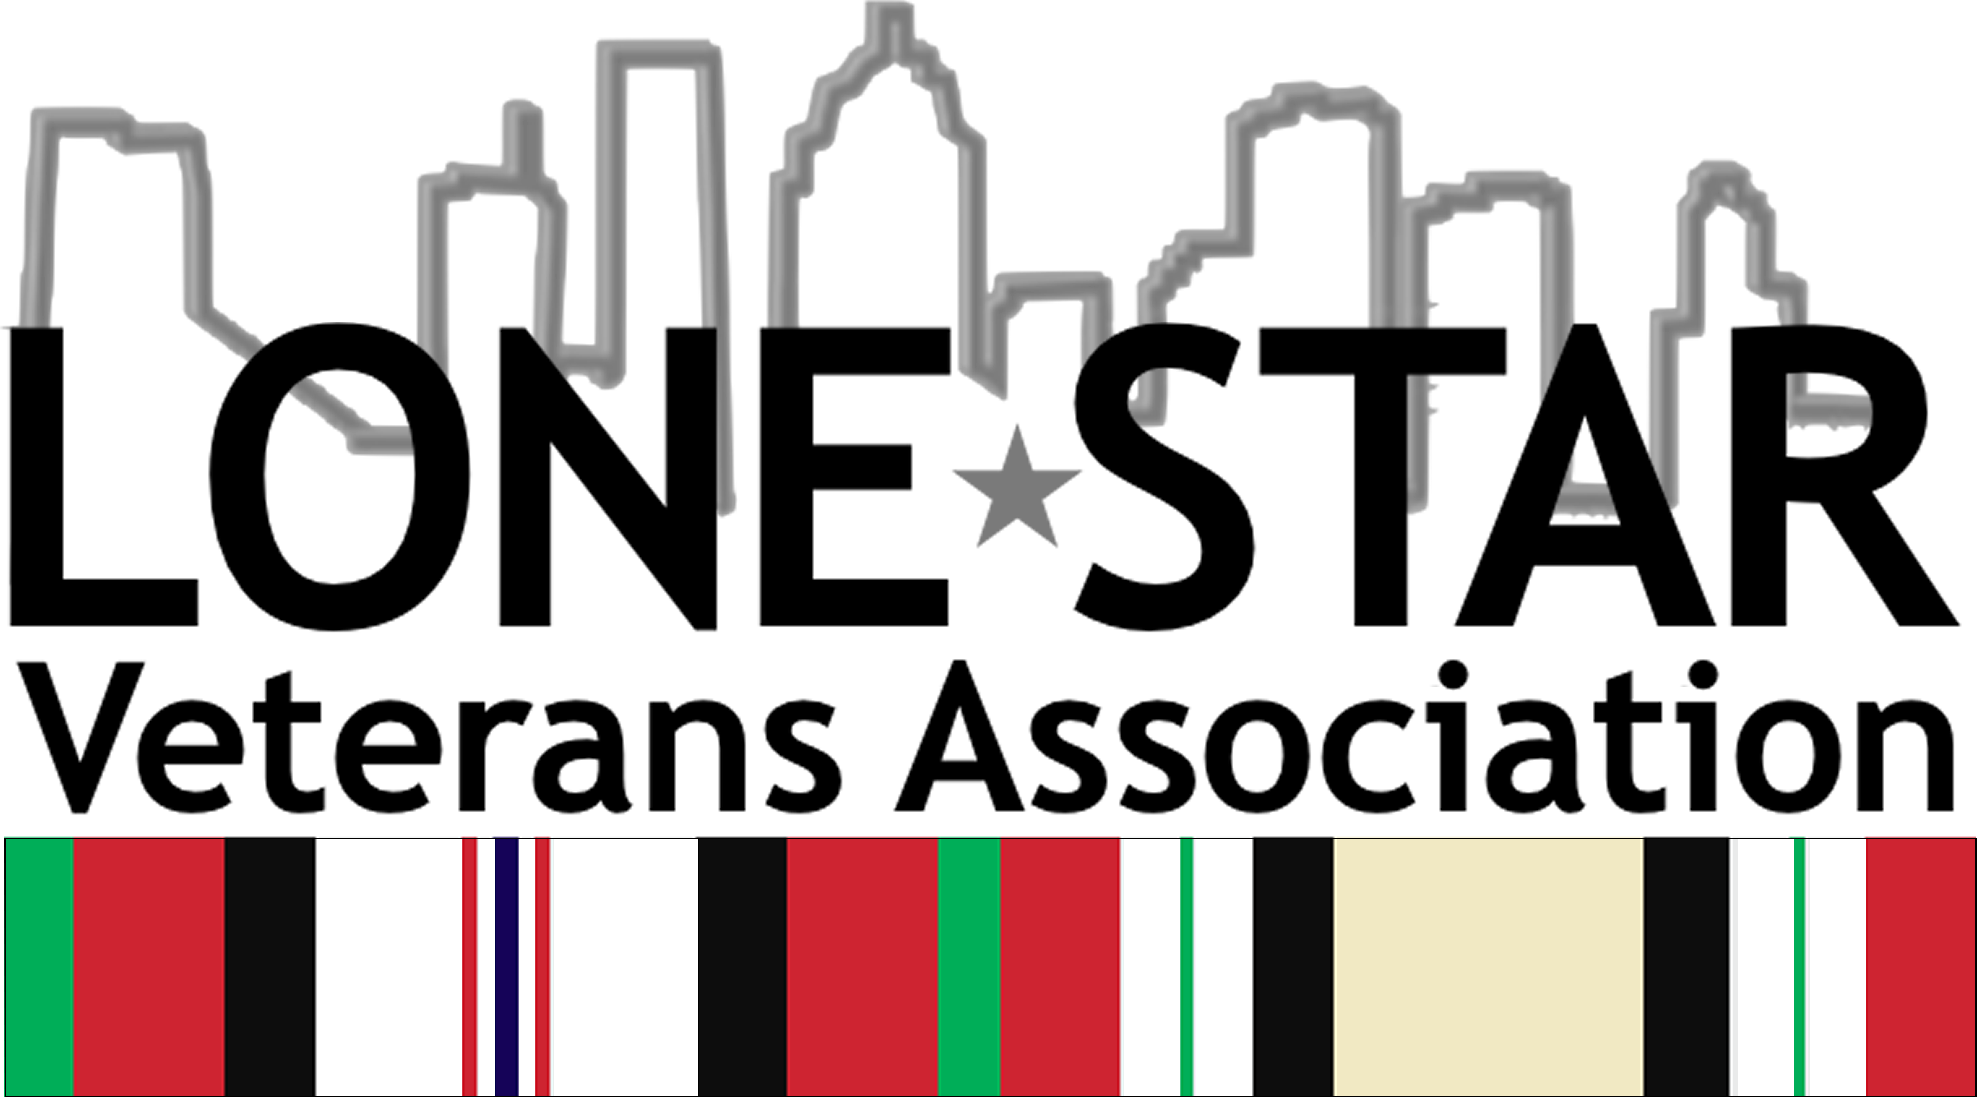 February 27, 2017 - National Business Development Association Actively Supports Veteran Leaders